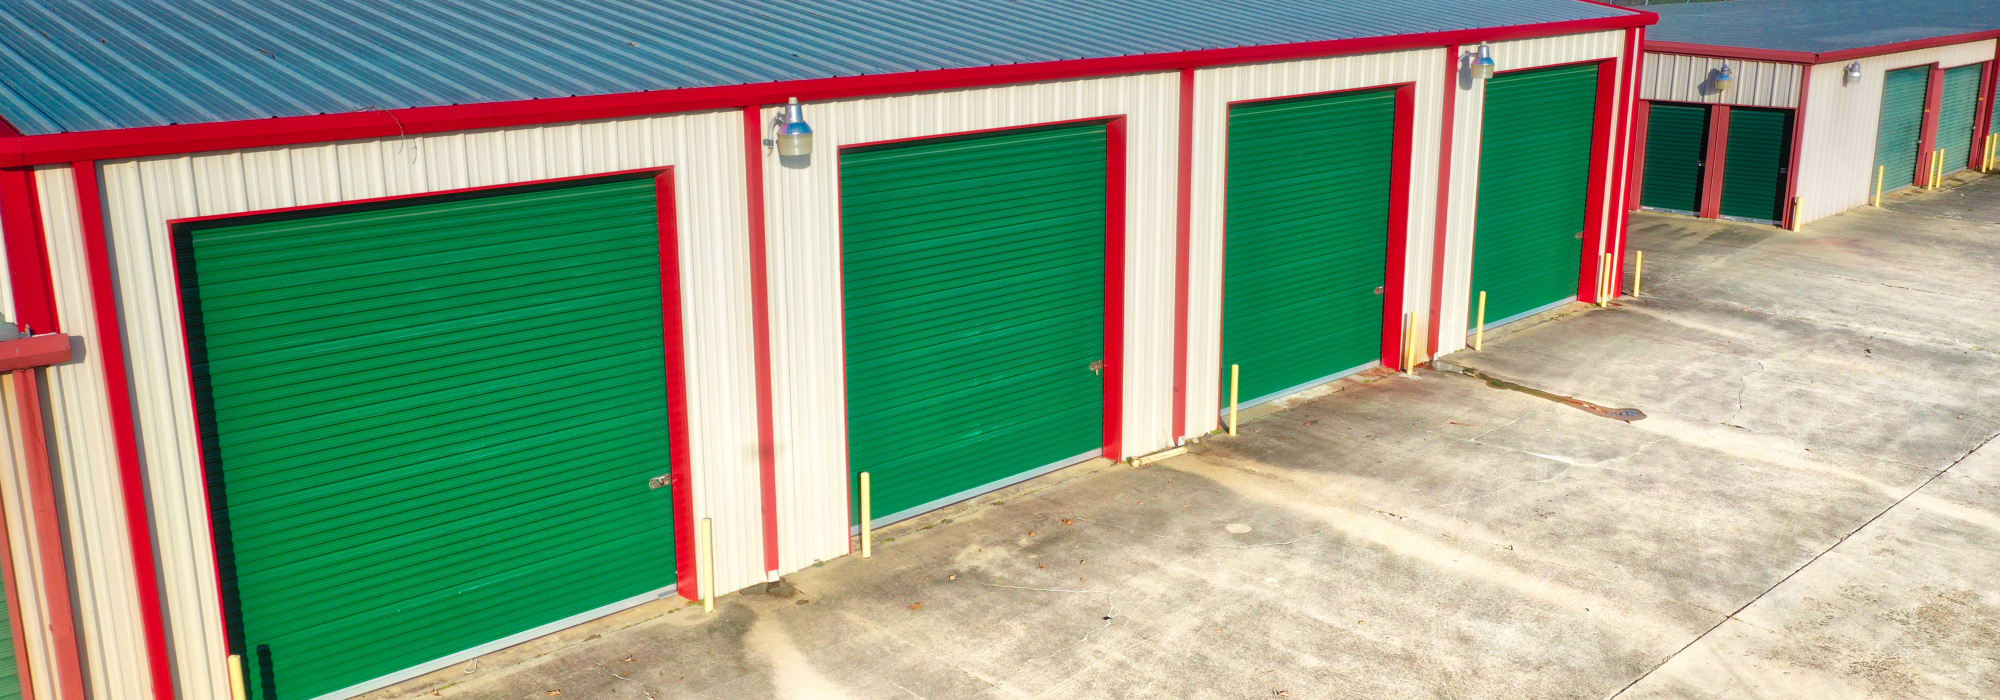 Exterior Units Texarkana, Texas near Lockaway Storage